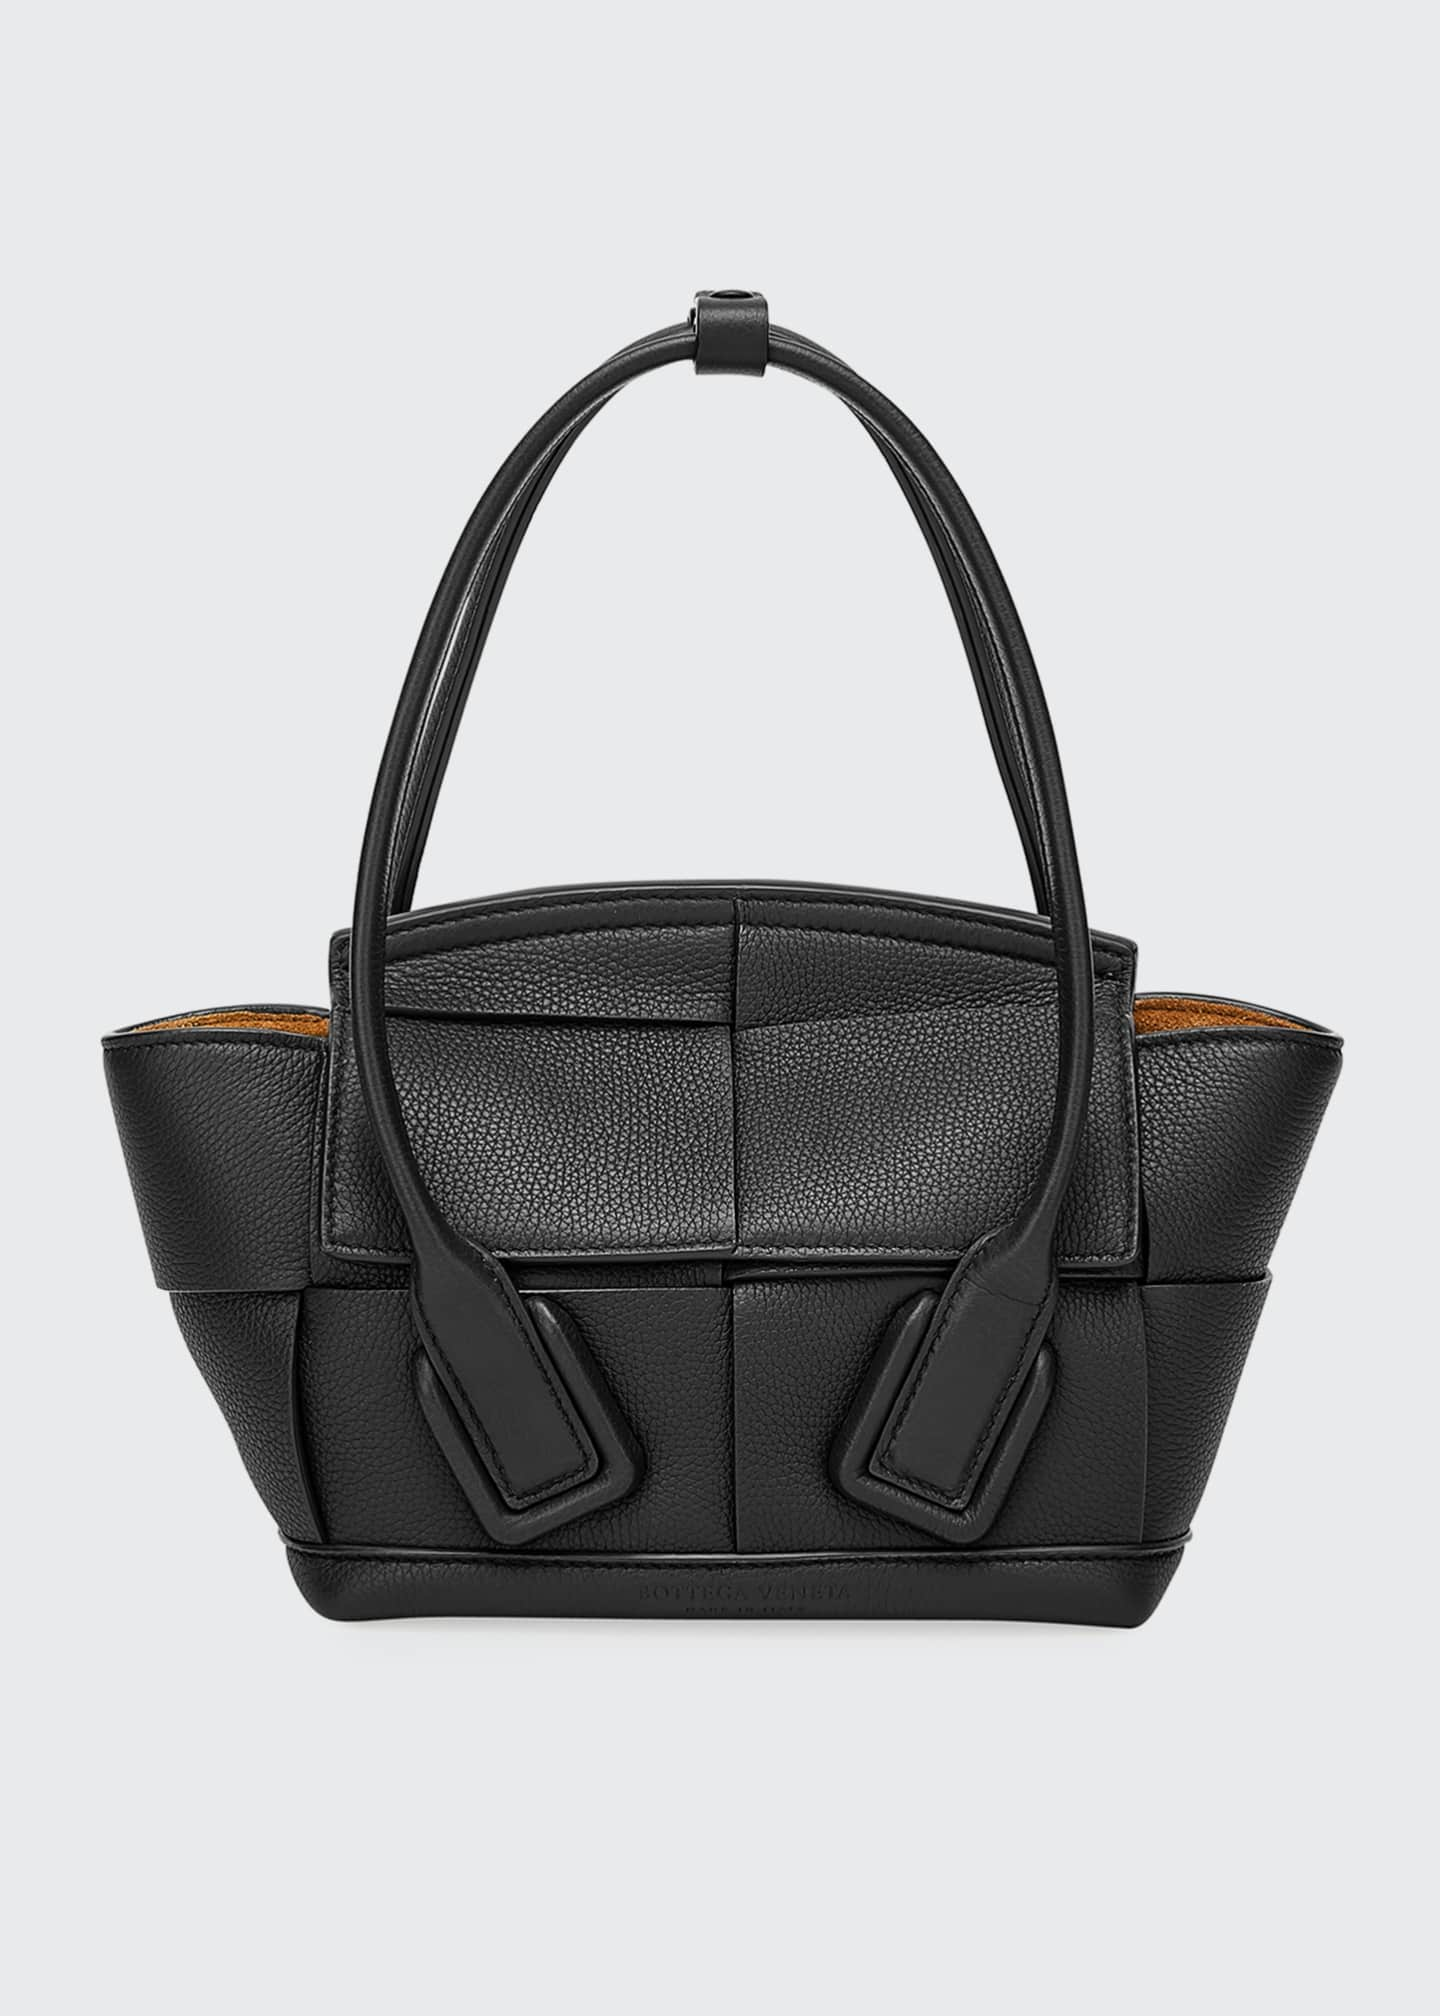 Bottega Veneta Arco 33 Mini Grainy Leather Top-Handle